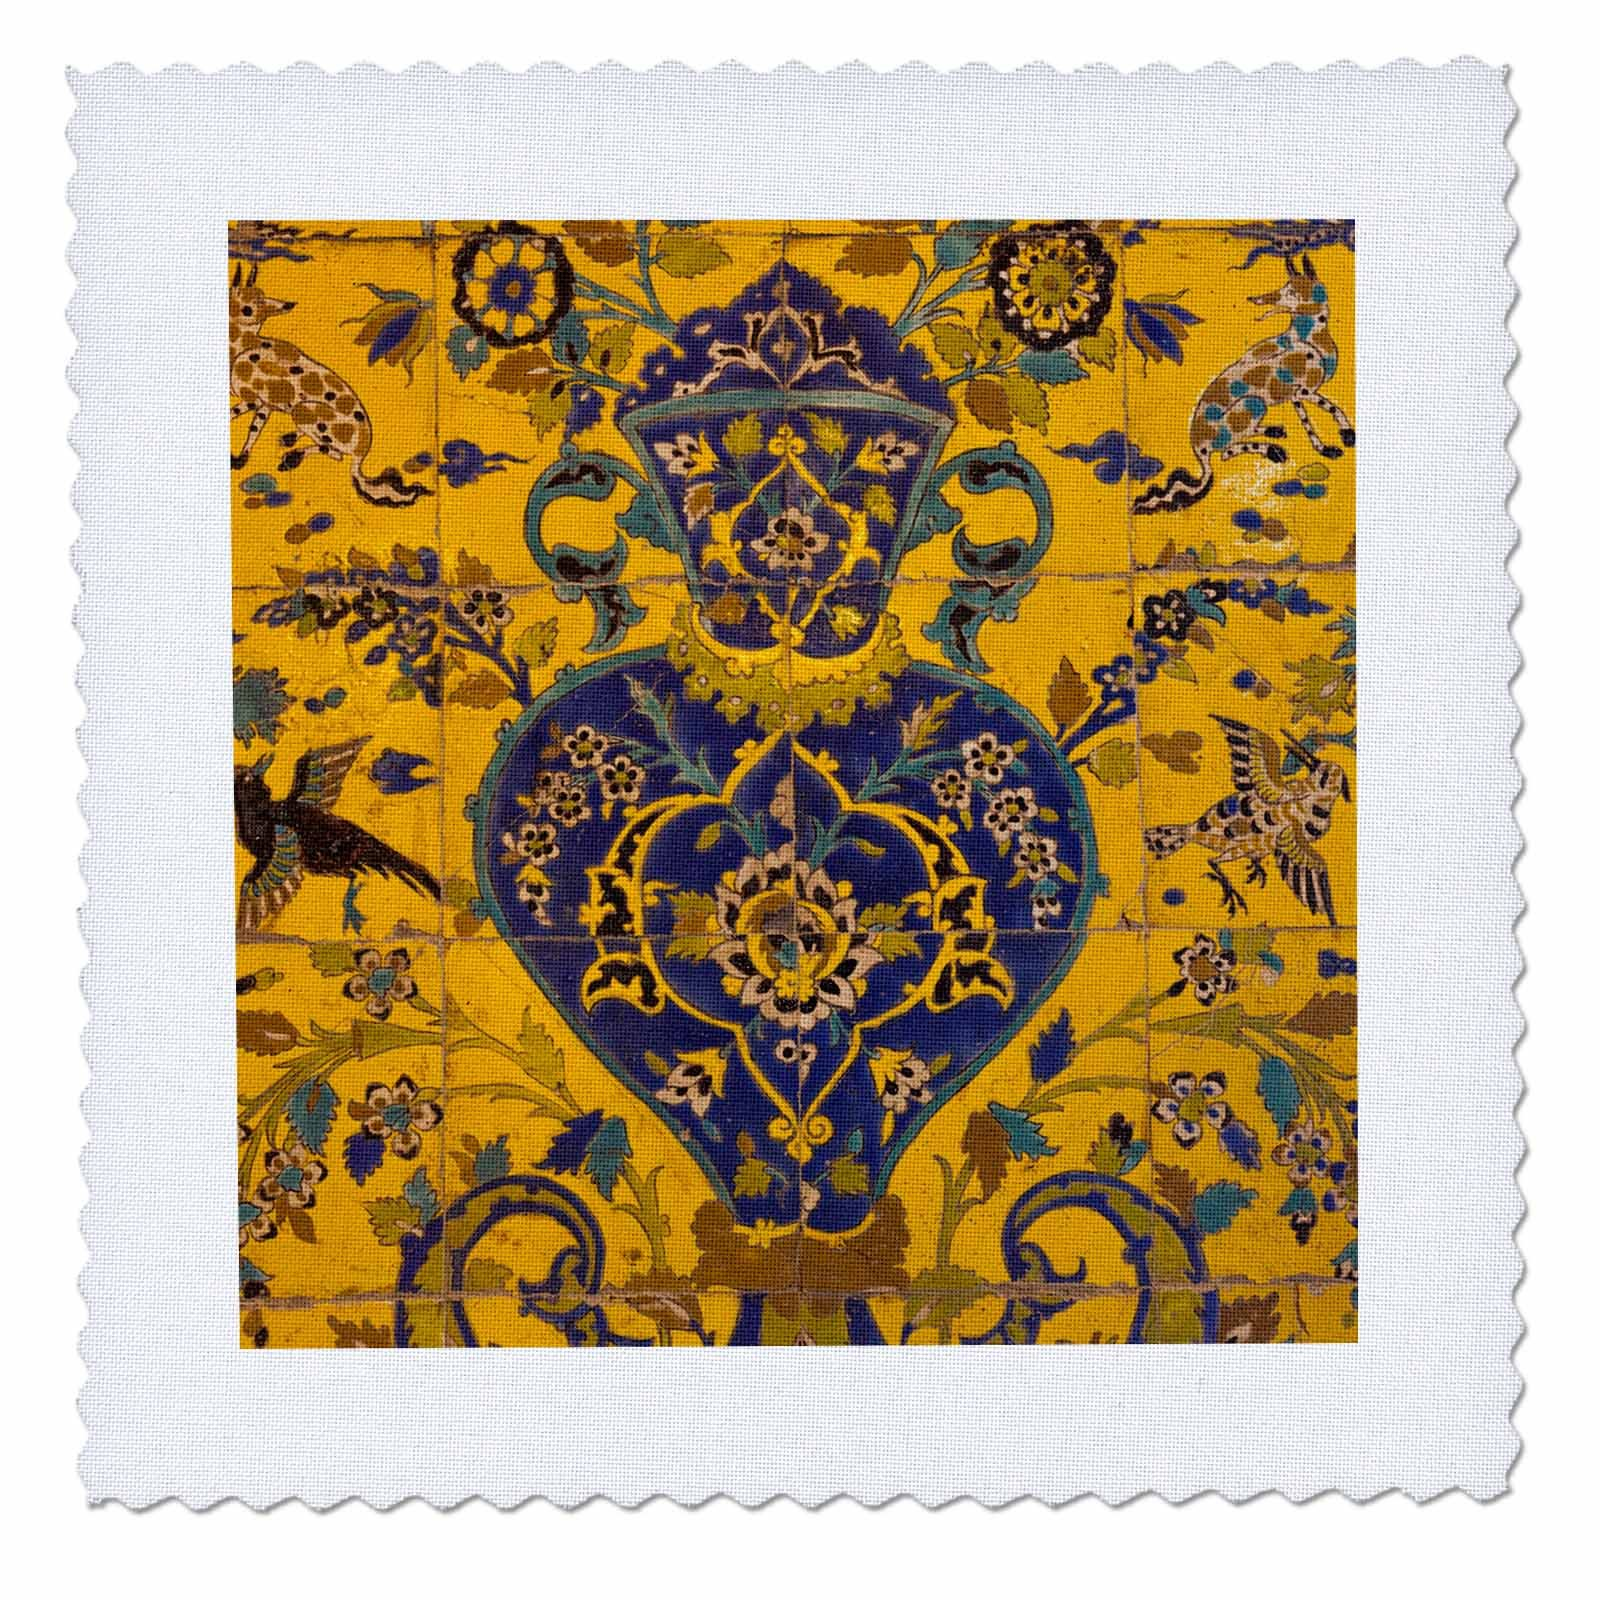 3dRose Danita Delimont - Artwork - Central Iran, Esfahan, Bethlehem Armenian Church, Interior - 18x18 inch quilt square (qs_276842_7)